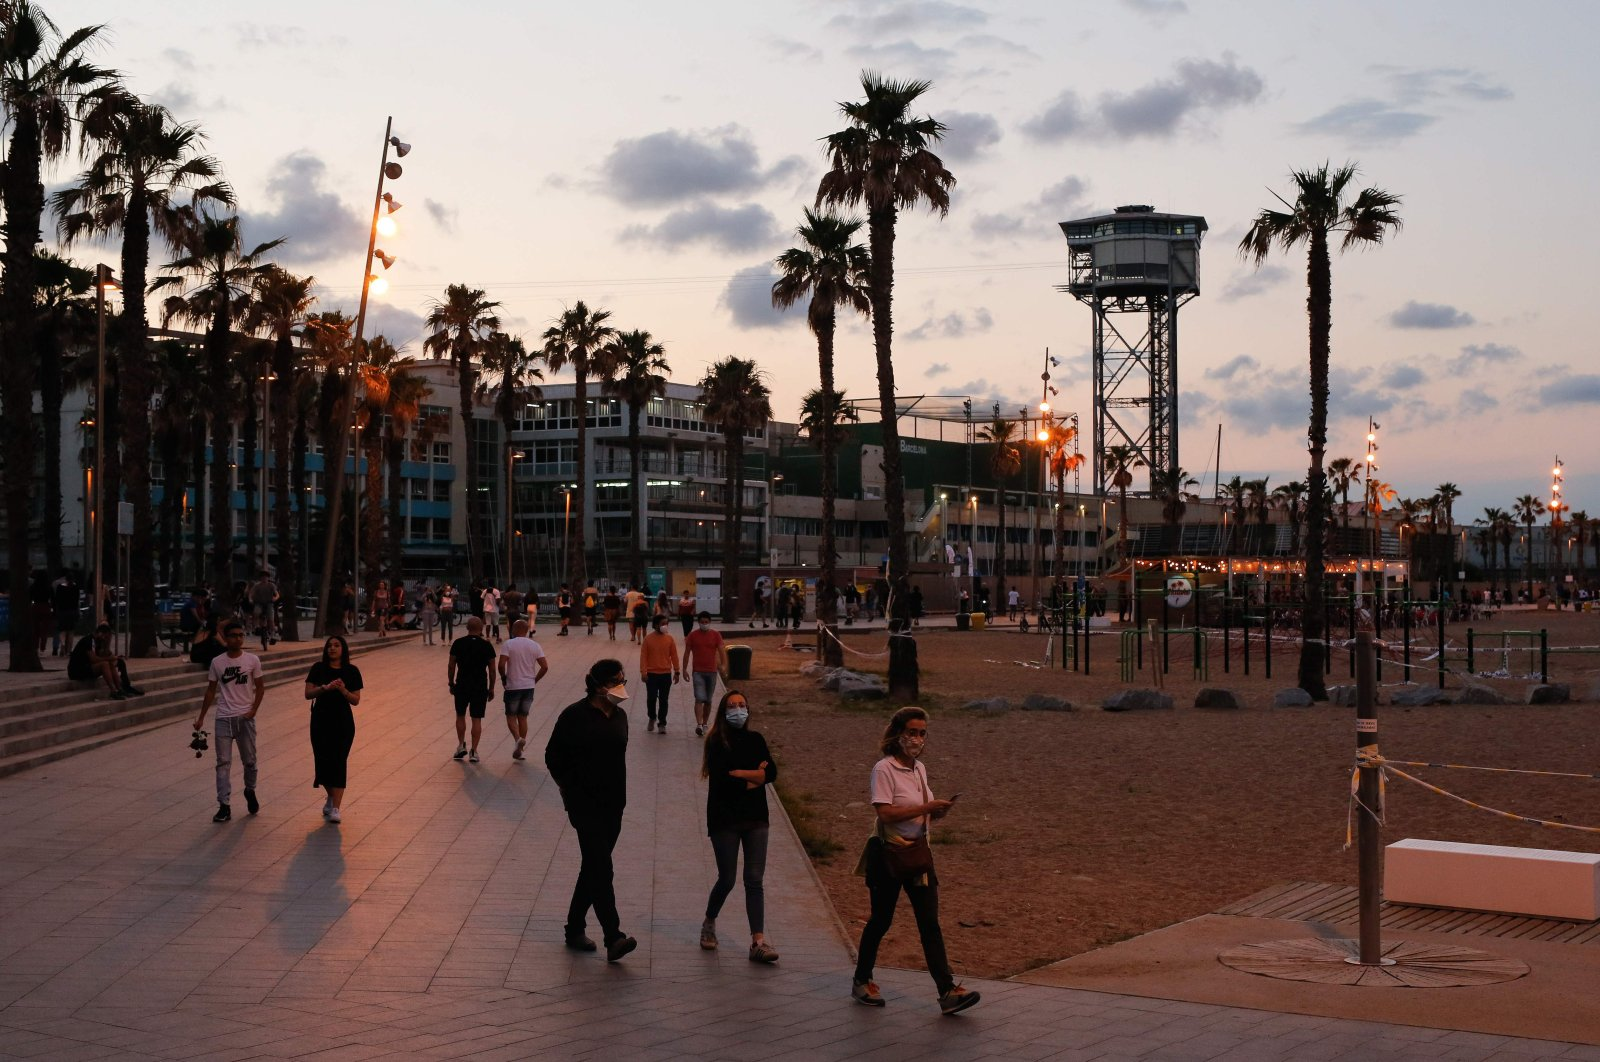 People stroll along Barceloneta Beach in Barcelona on May 30, 2020 amid a national lockdown to prevent the spread of the novel coronavirus. (AFP Photo)